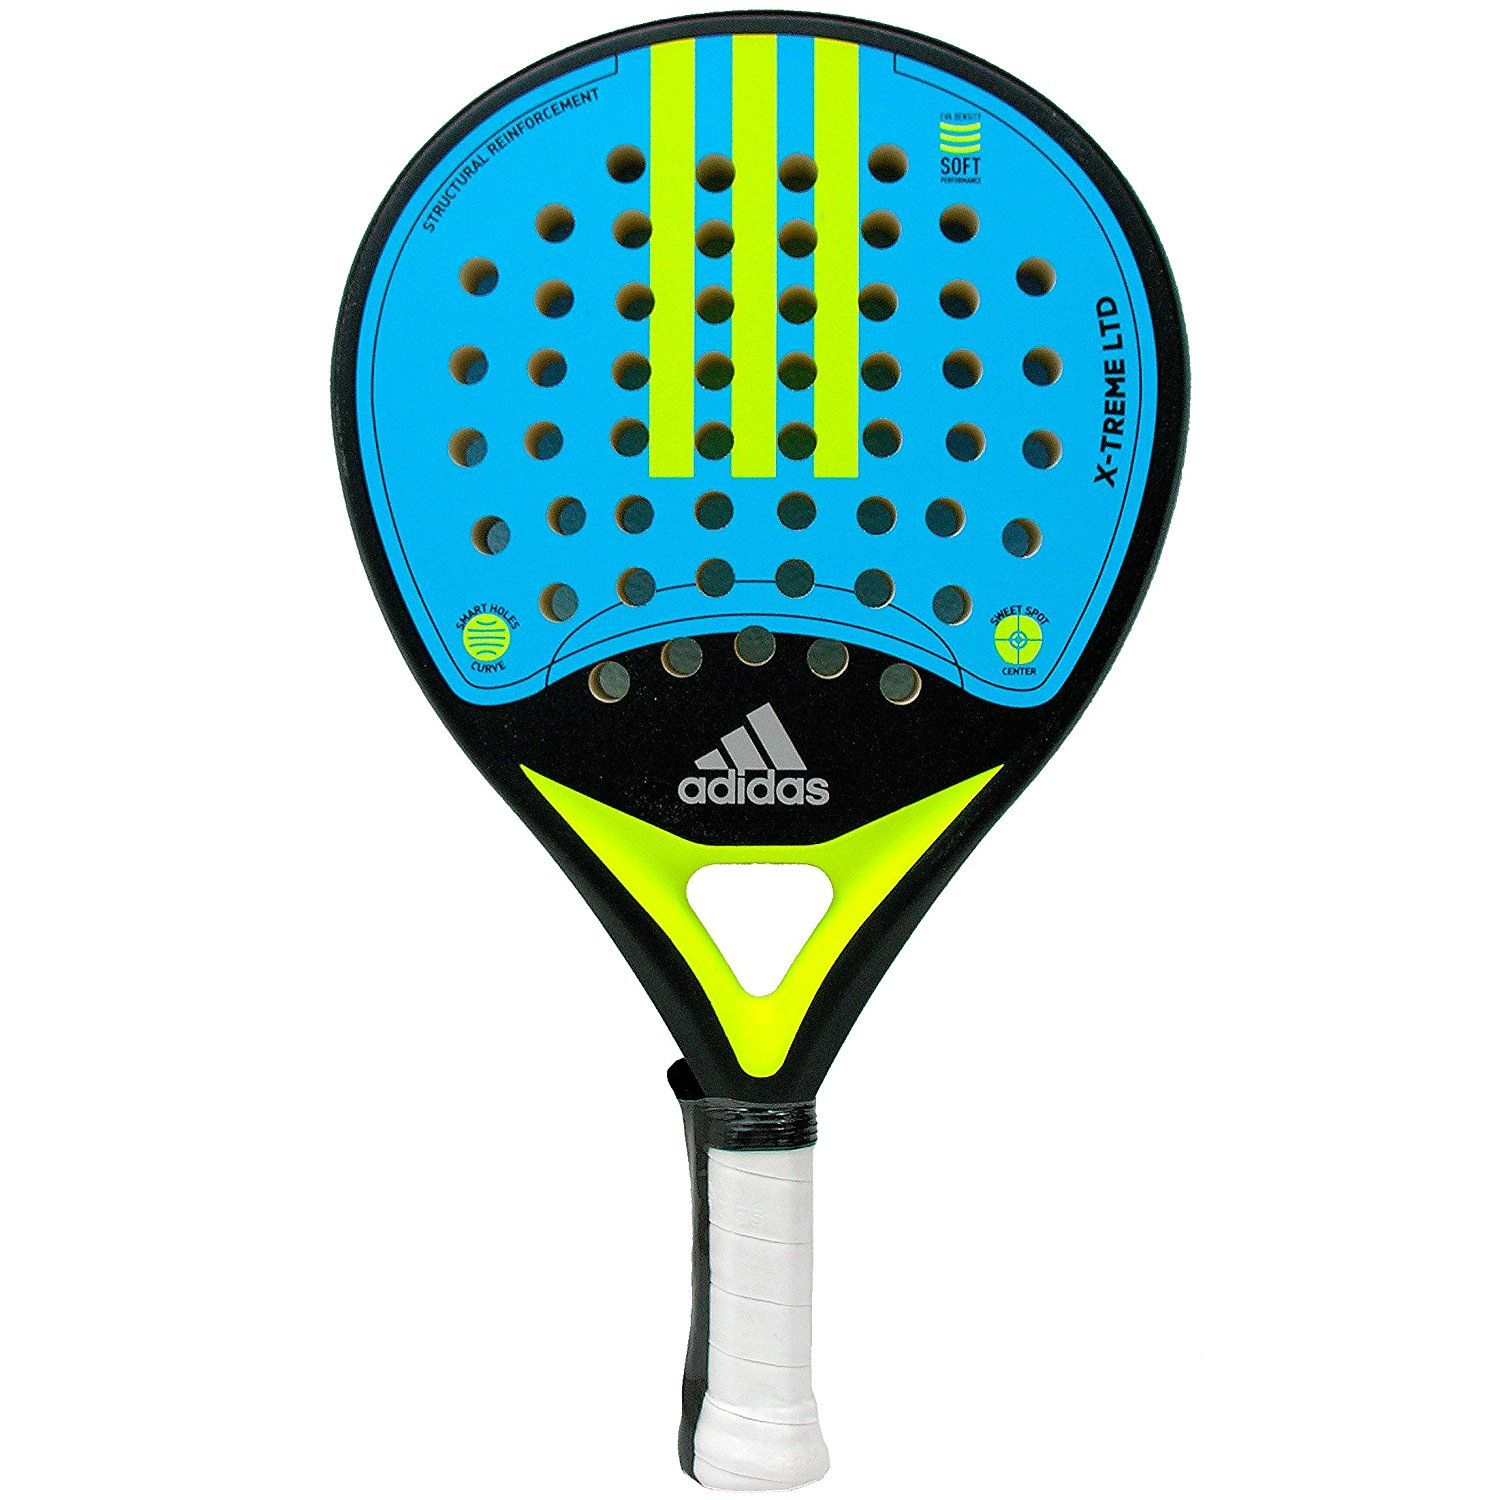 CHOLLO PALA PADEL ADIDAS x-TREME ltd BLUE 2018